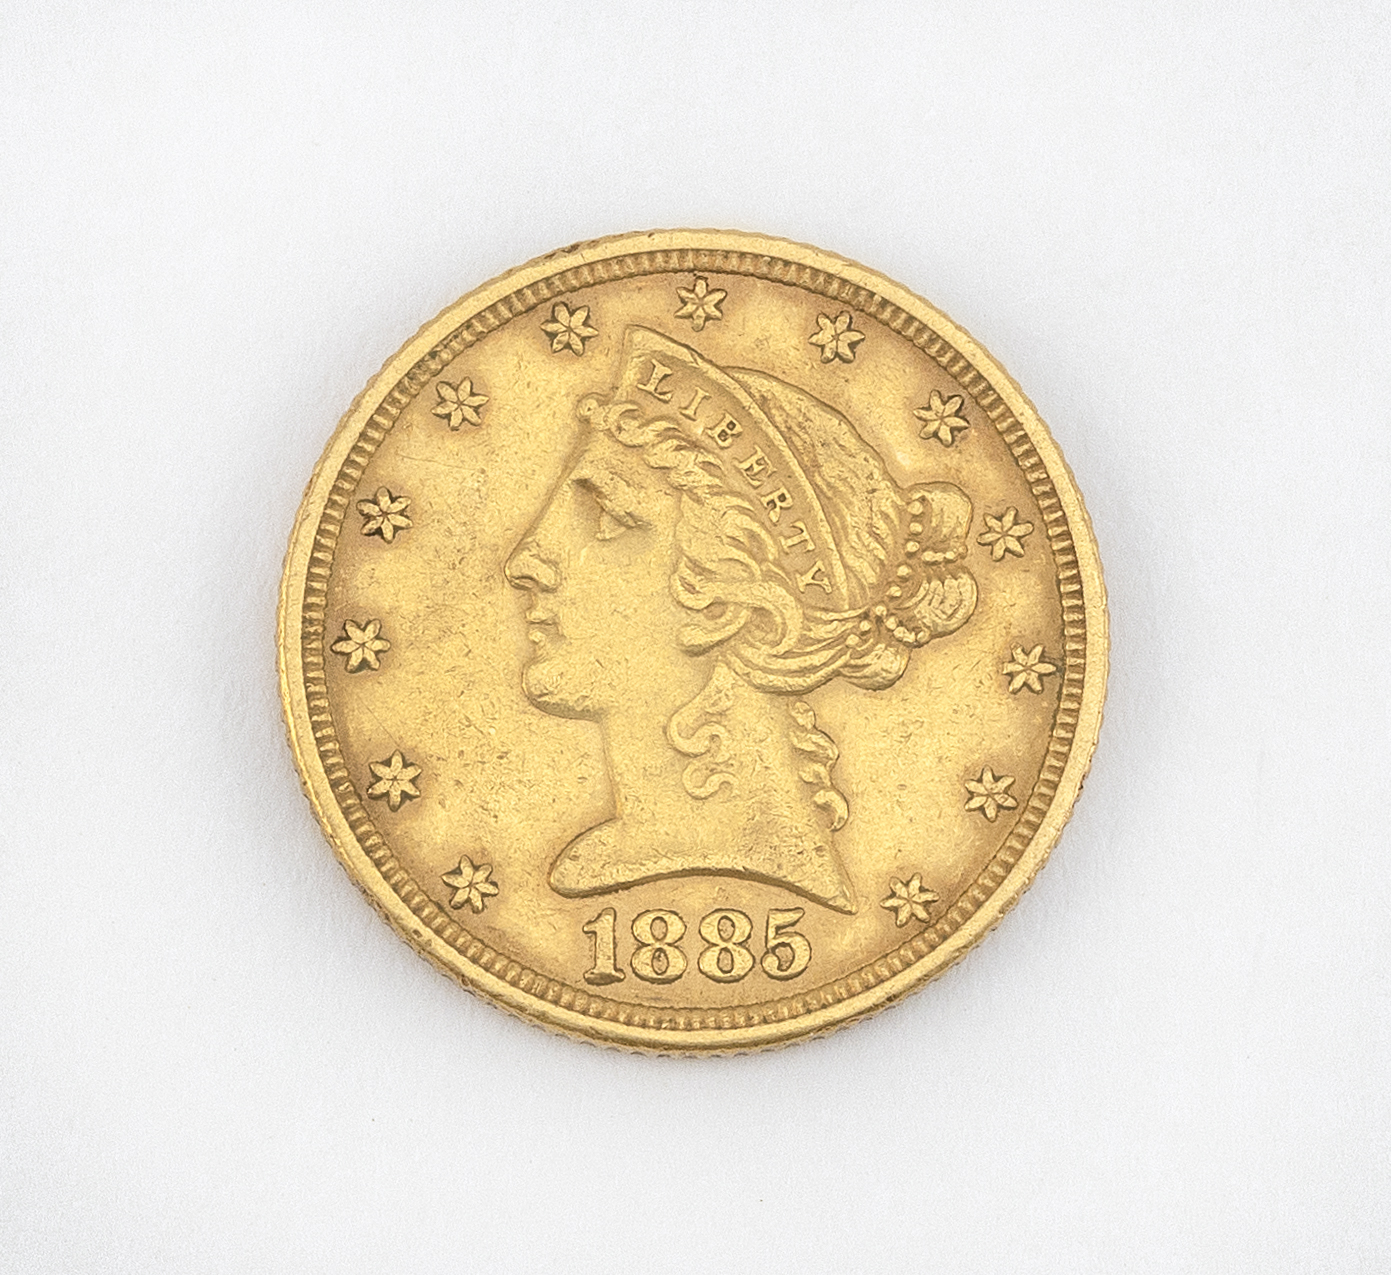 1885 LIBERTY HEAD US FIVE DOLLER GOLD COIN Approx. 5.35 dwt.